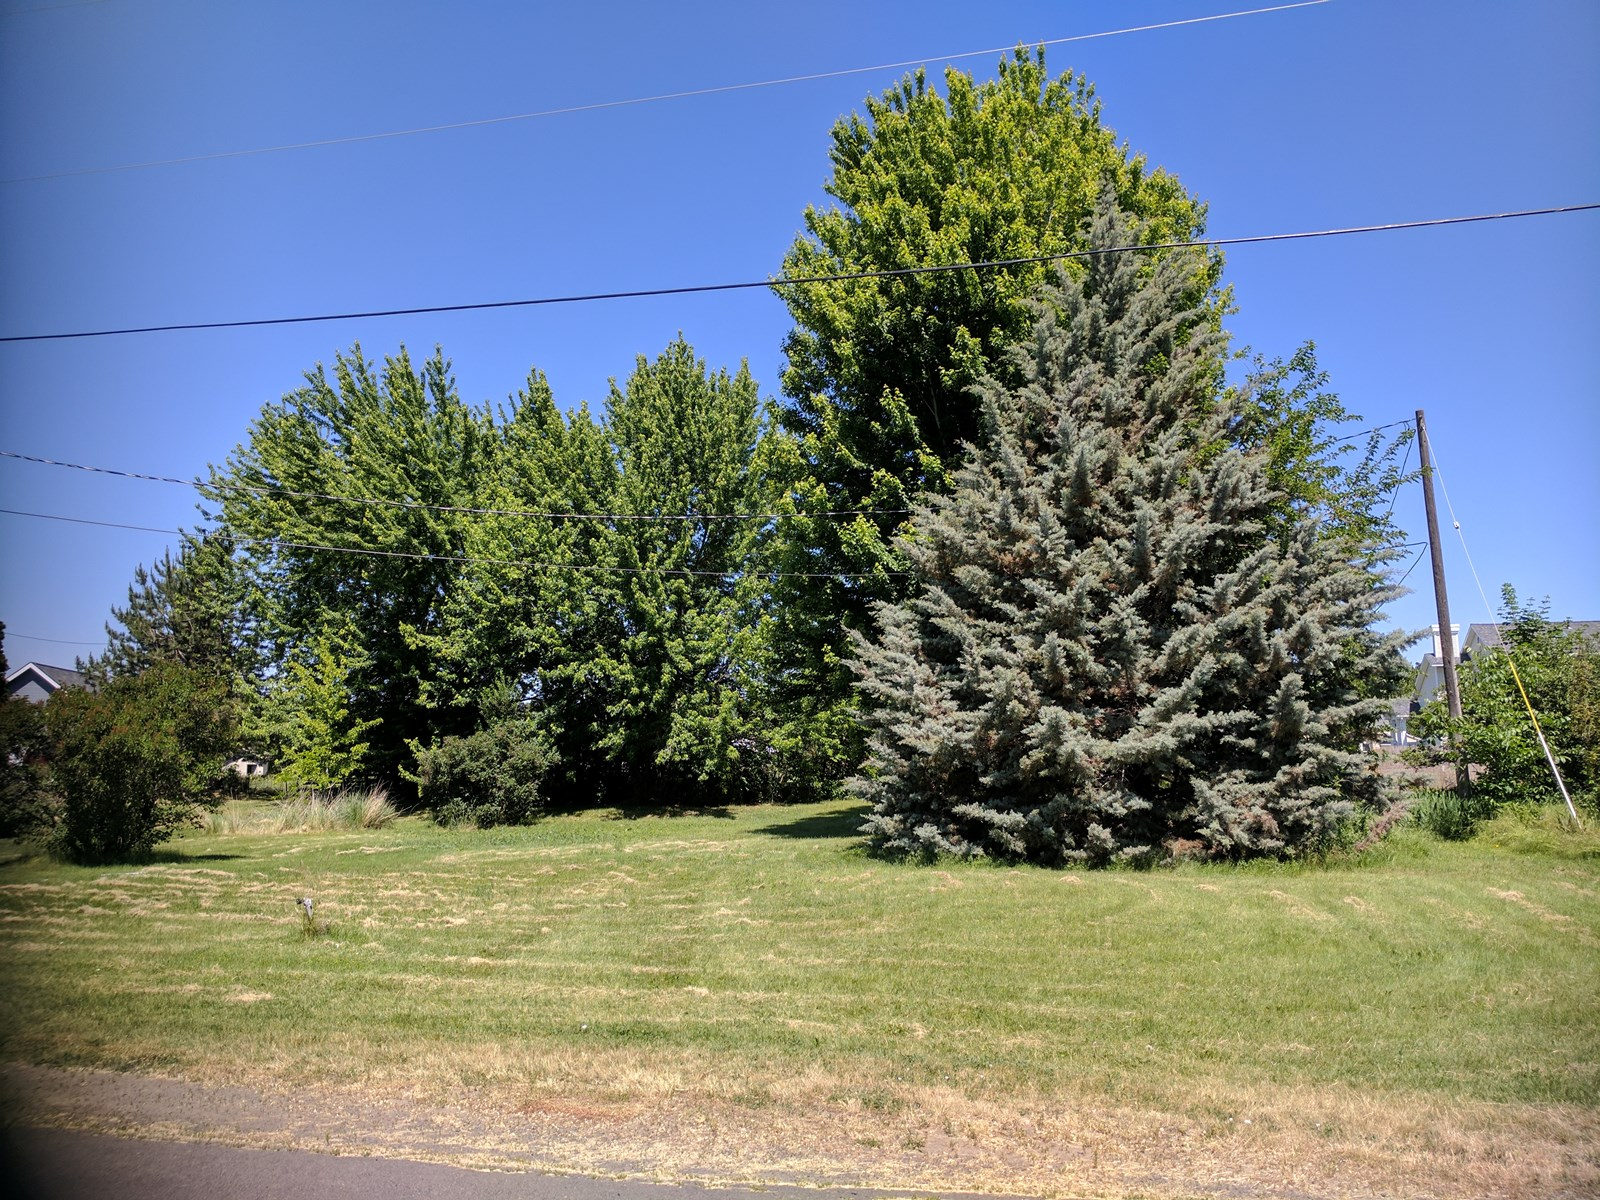 Residential Lot For Sale in College Place WA